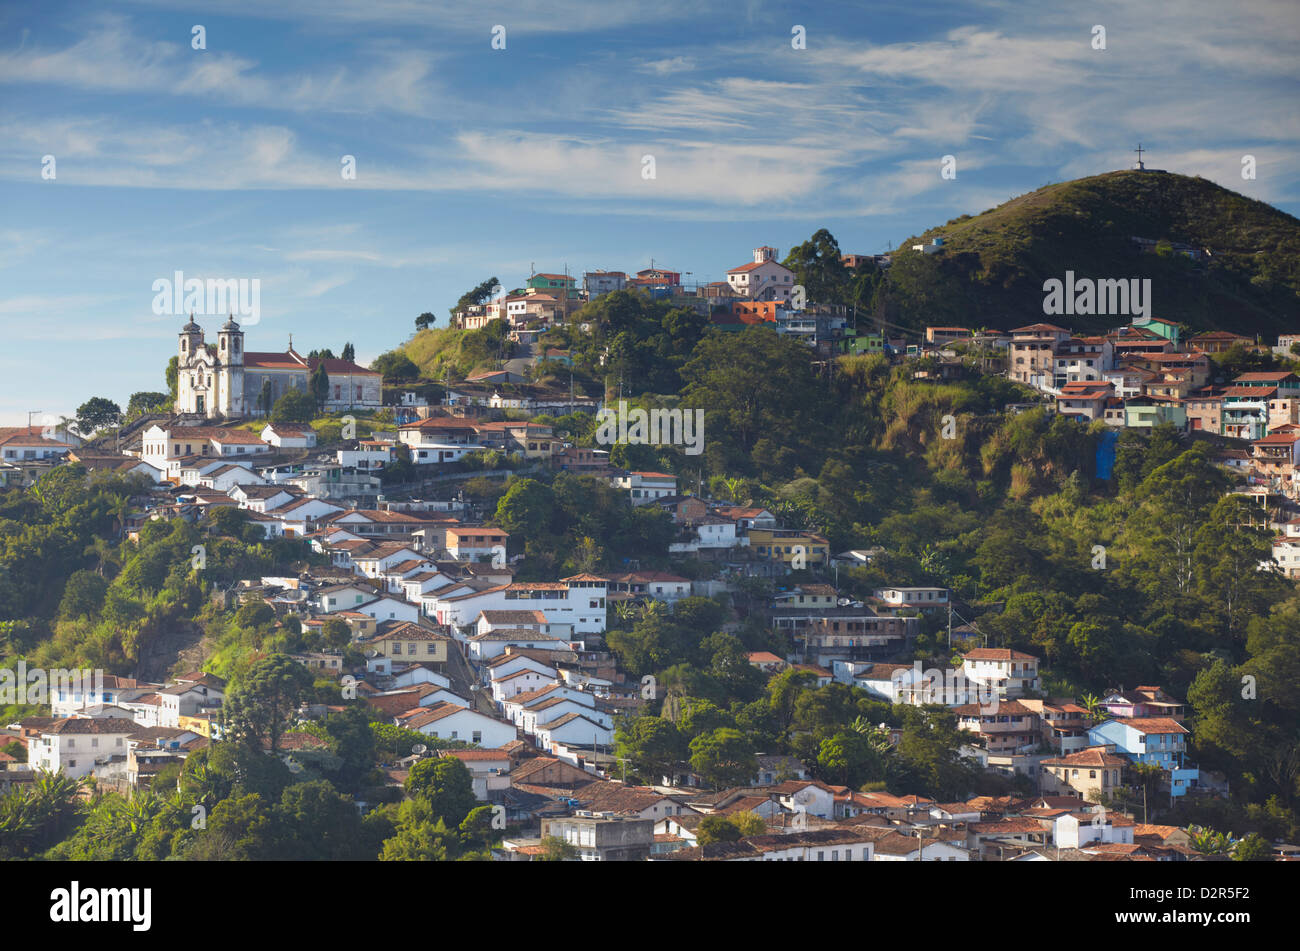 View of Santa Efigenia dos Pretos Church and hillside houses, Ouro Preto, Minas Gerais, Brazil - Stock Image